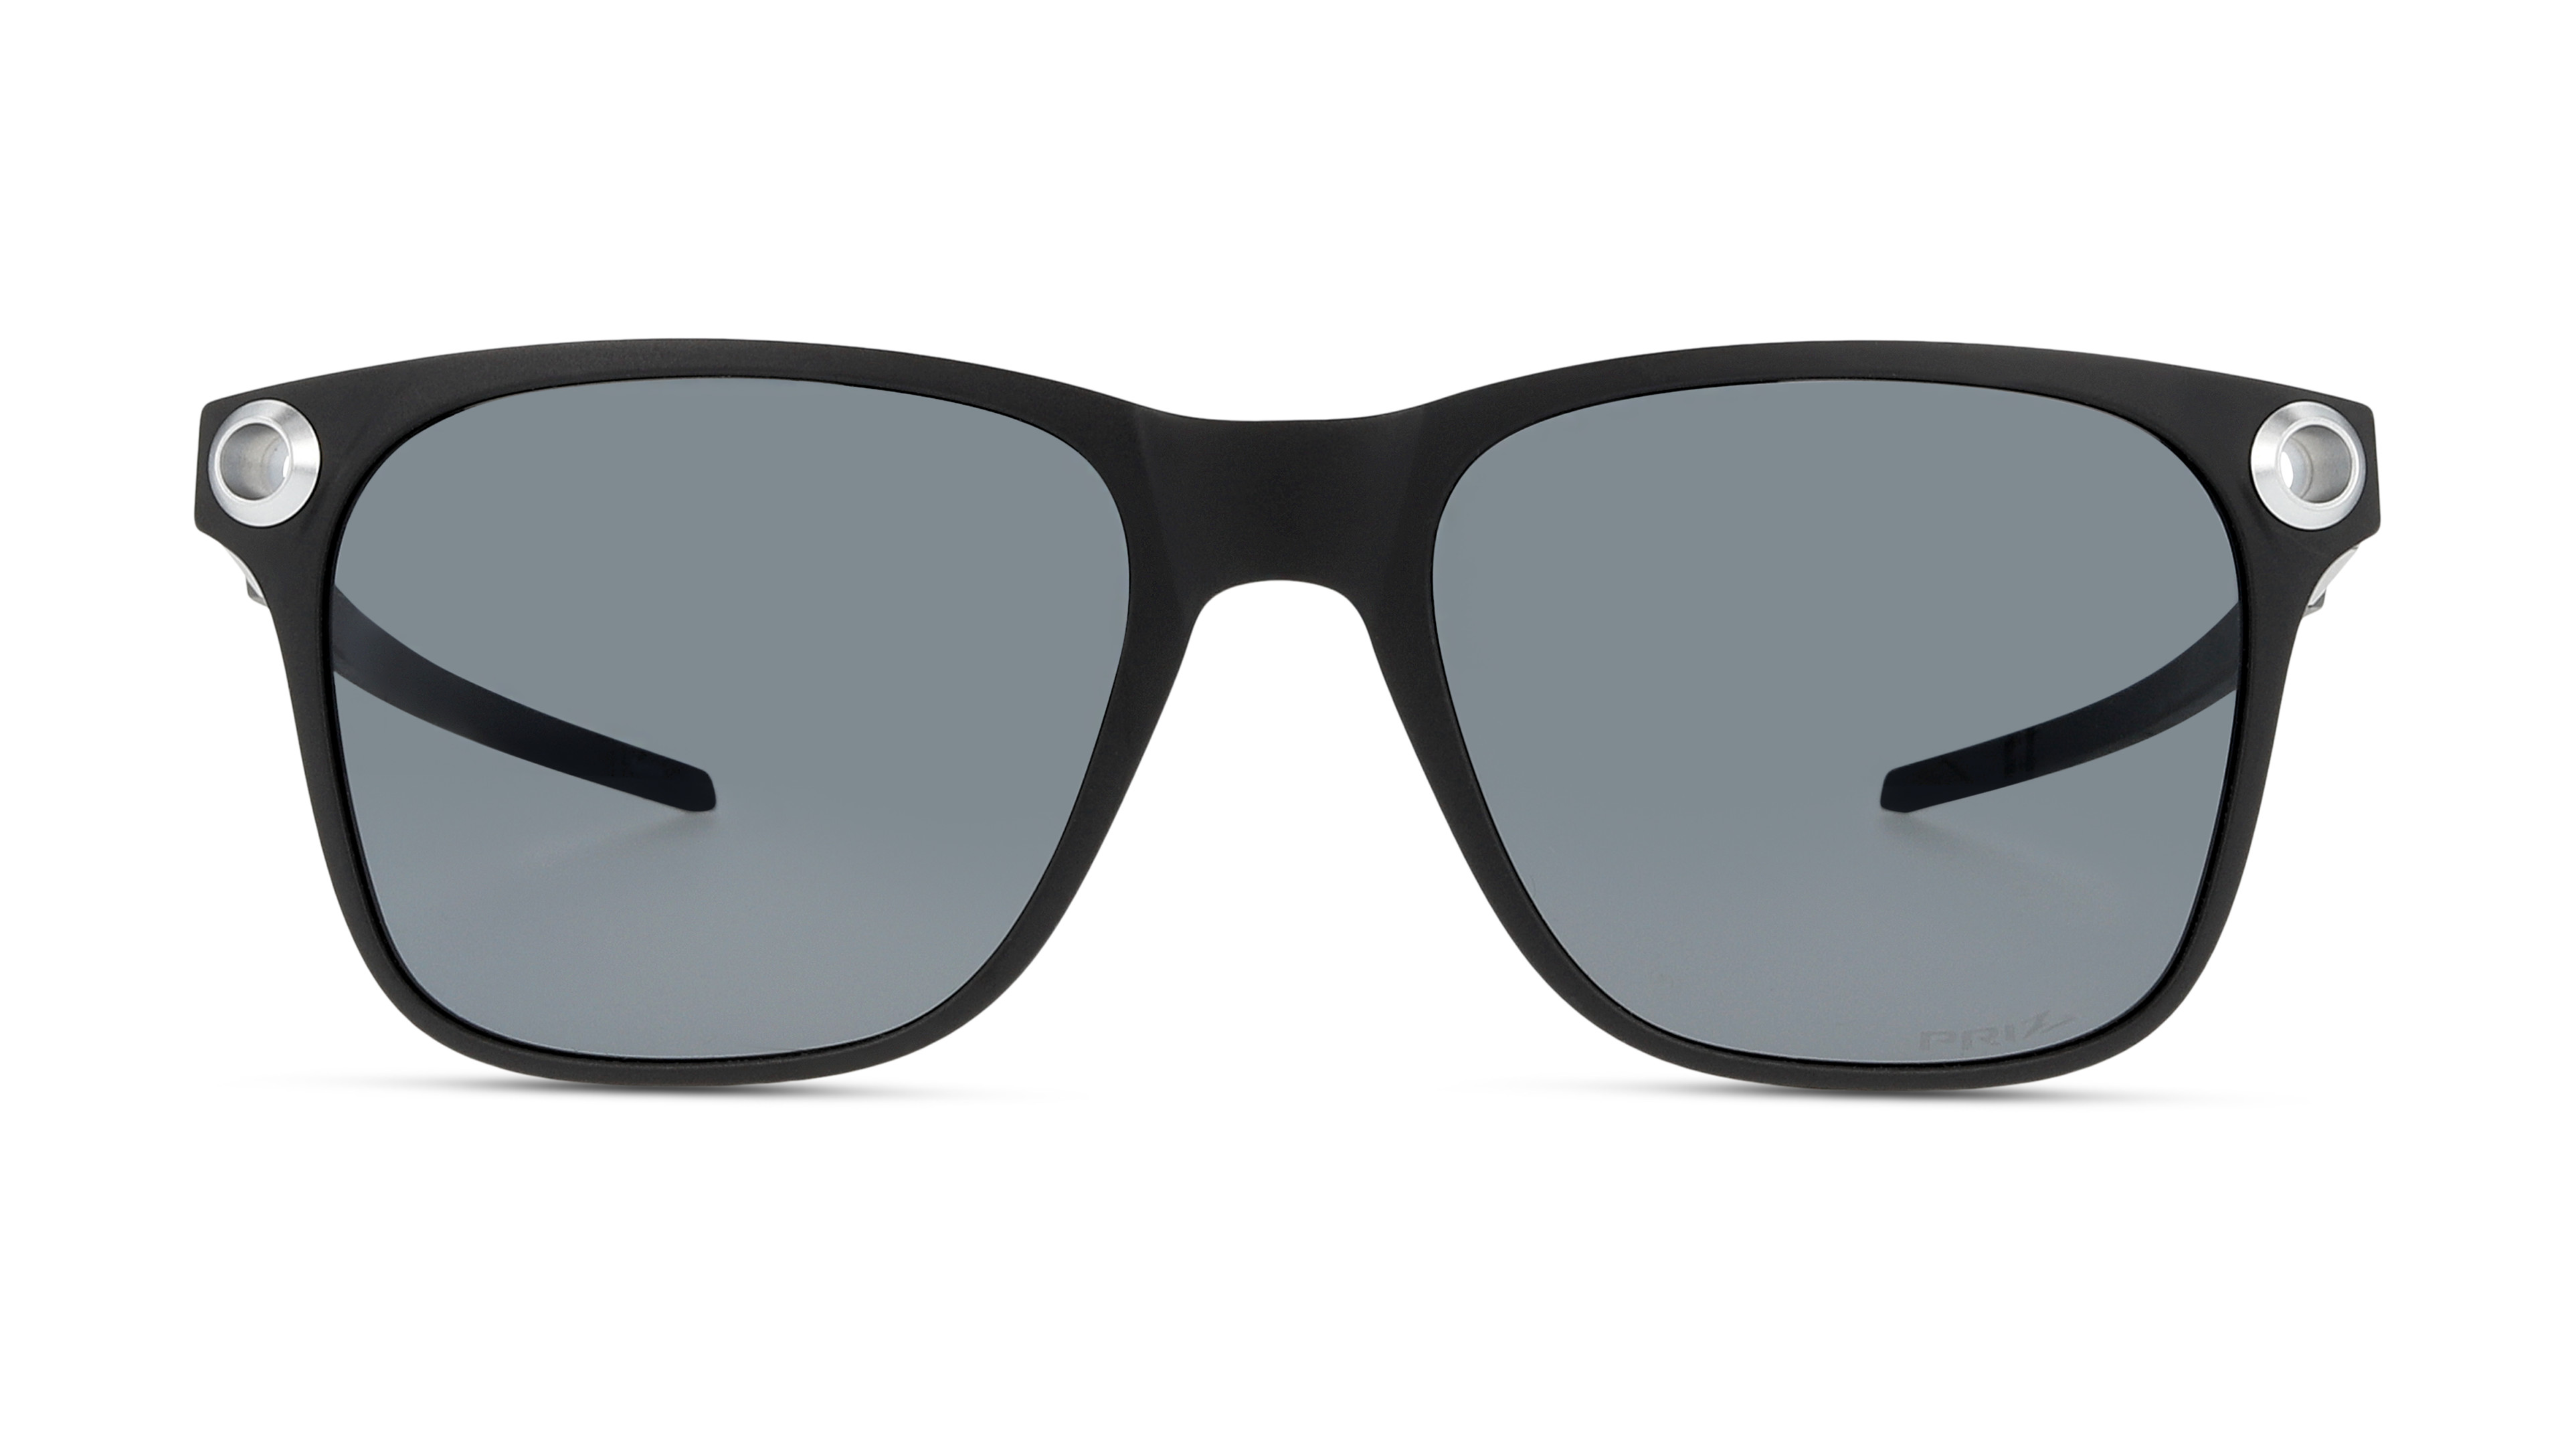 0888392440228-front-oakley-sonnenbrille-0oo9451-APPARITION-satin-black